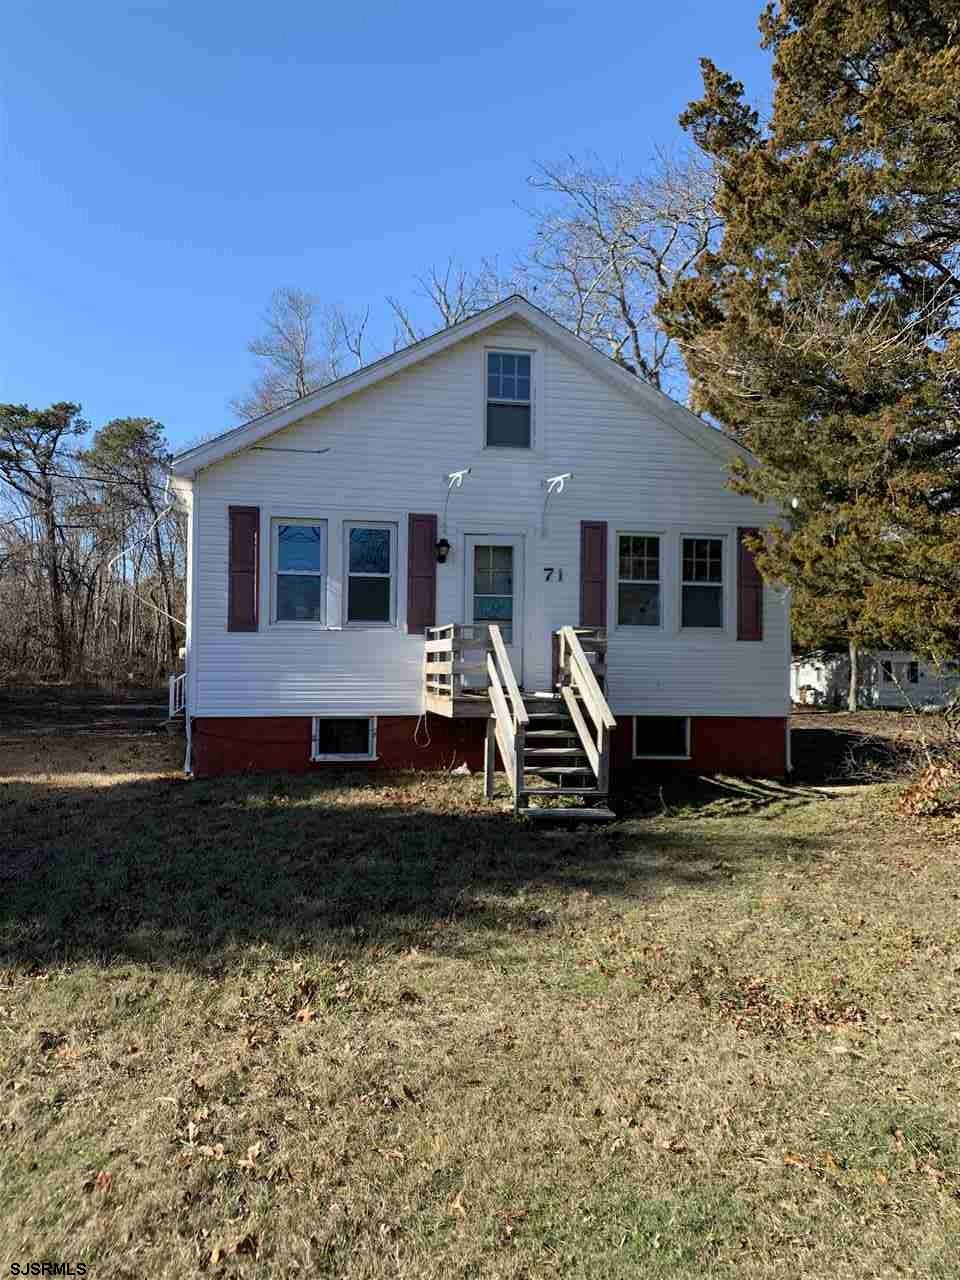 3 bedroom, 1 bath home on a 133x300 lot. Home is down to studs needs total update. Lot is in a comme